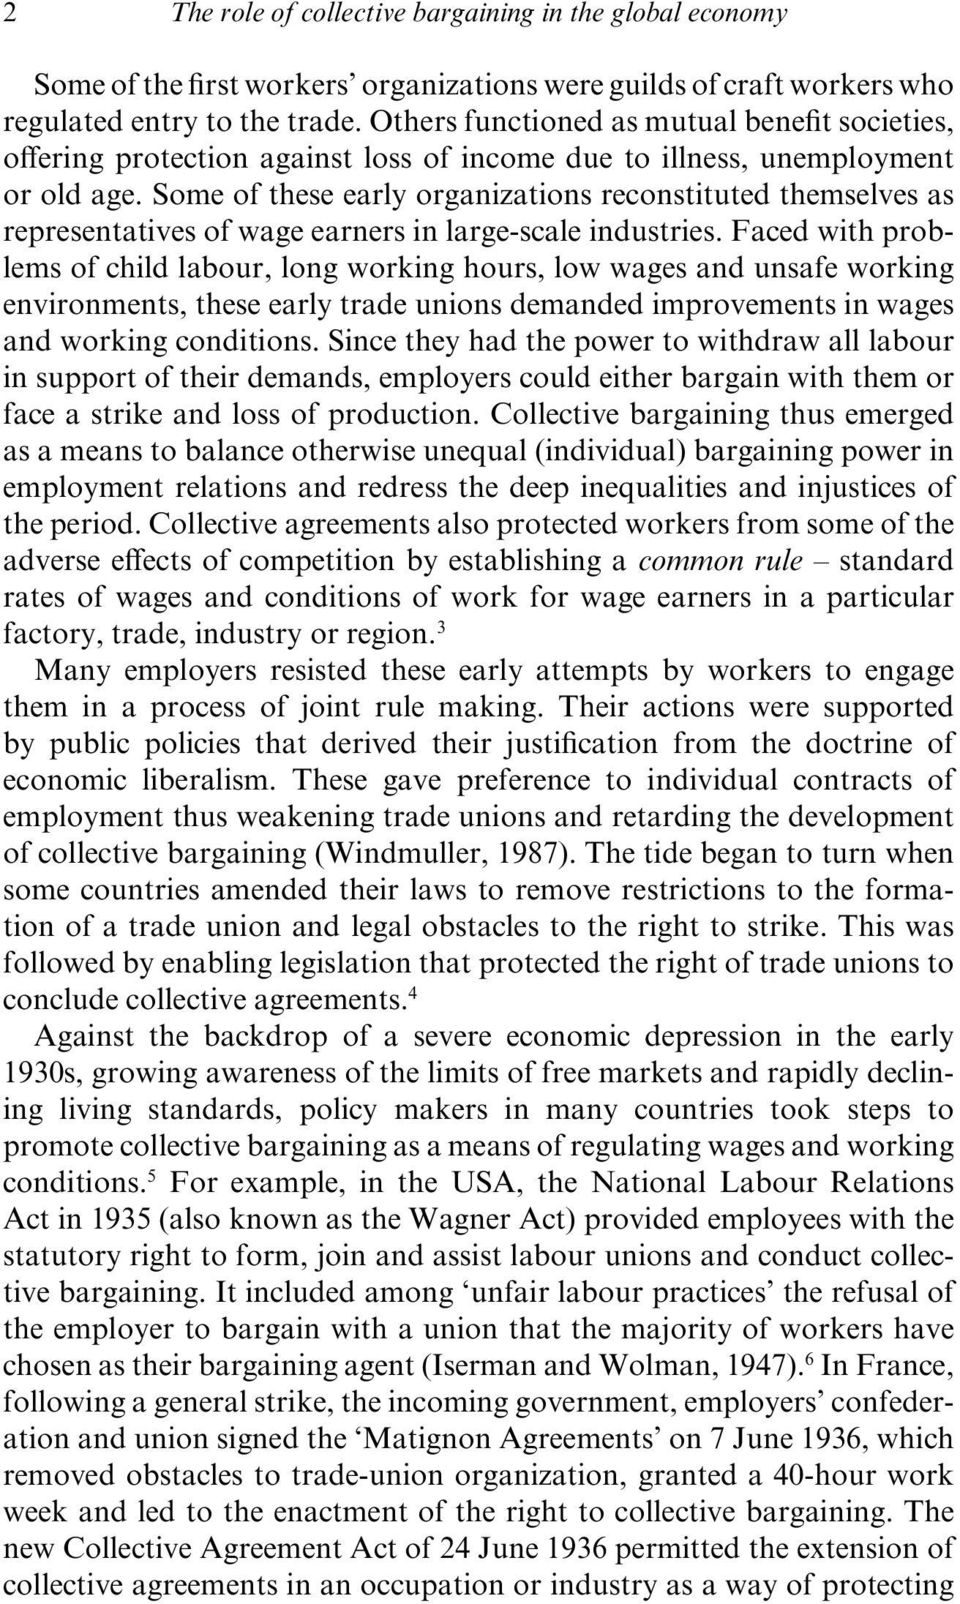 Some of these early organizations reconstituted themselves as representatives of wage earners in large- scale industries.